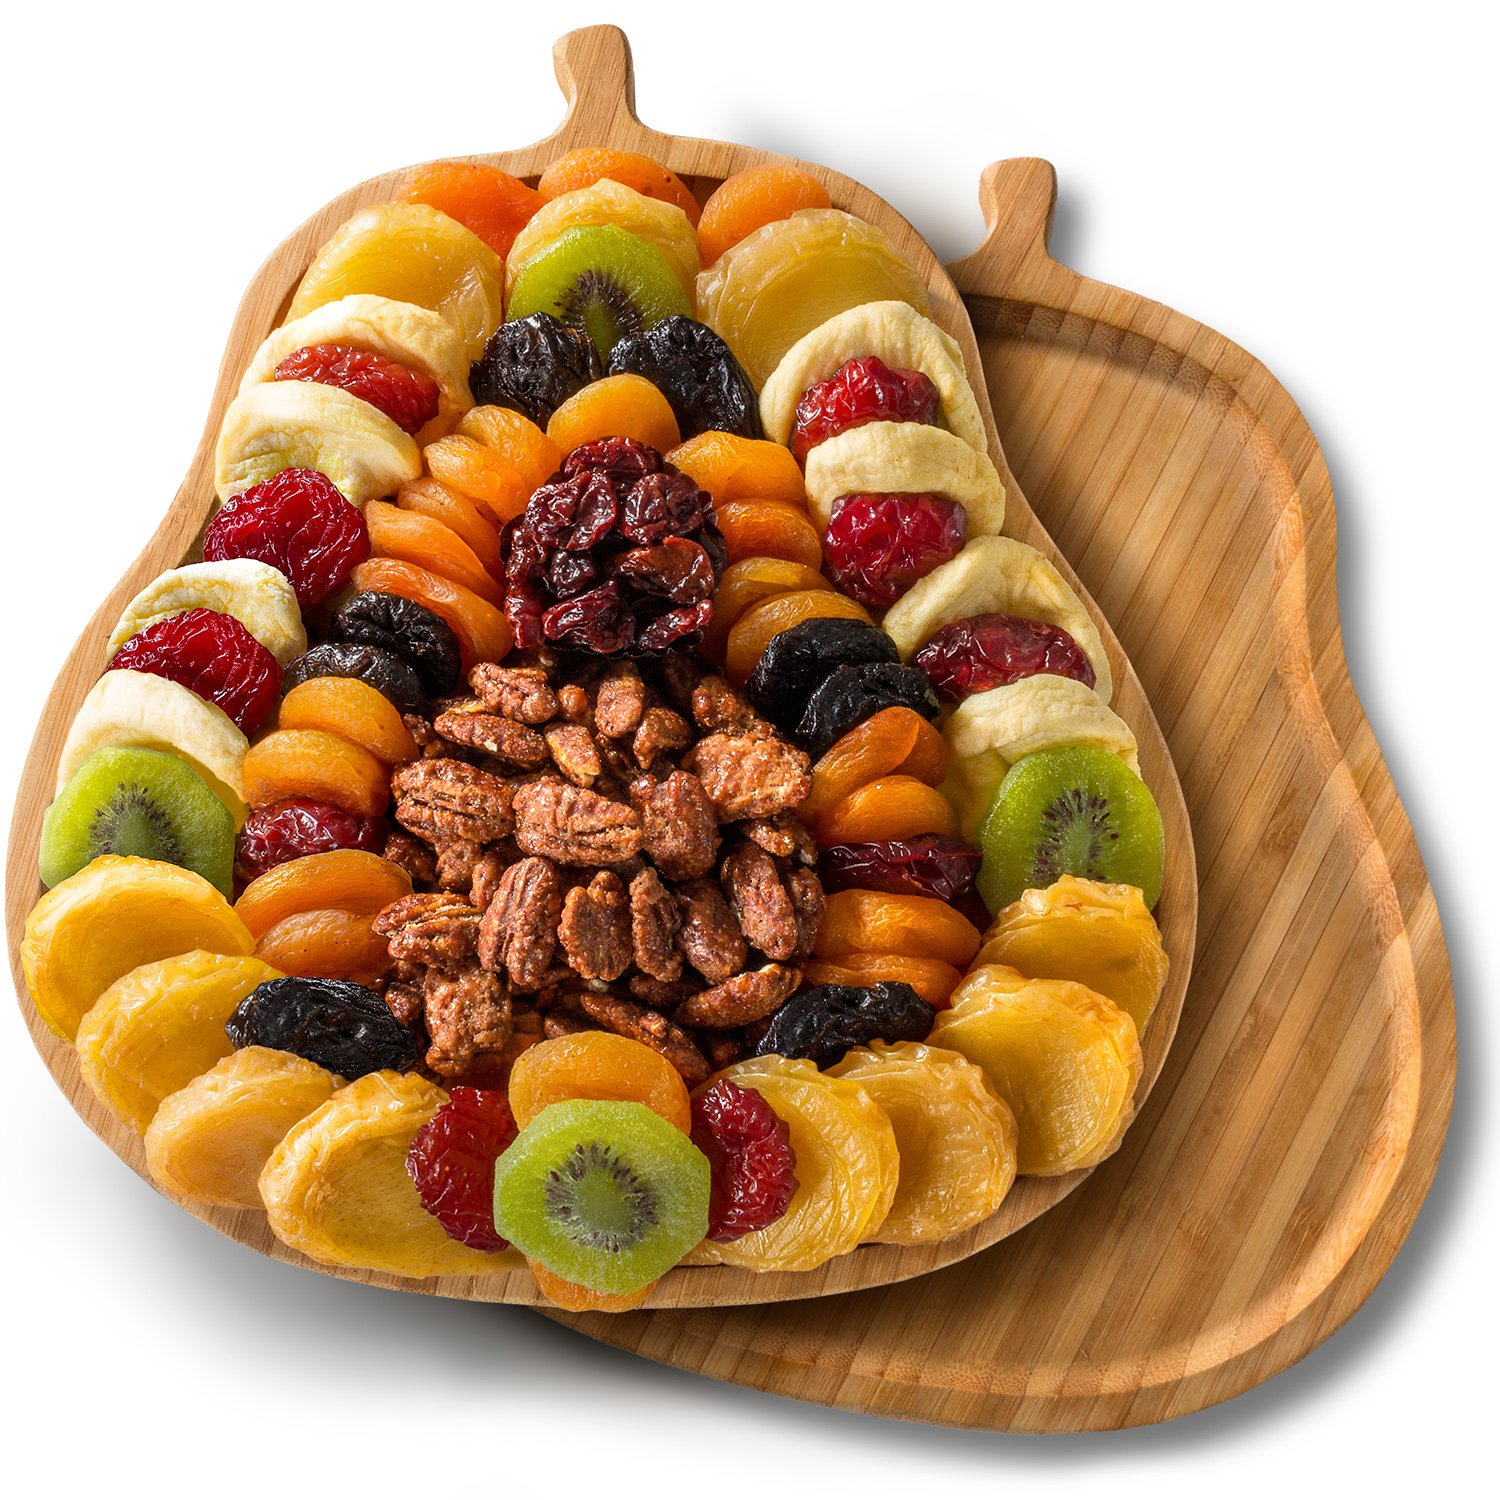 Golden State Fruit Dried Fruit Tray with Nuts on Pear Shaped Bamboo Cutting Board by Golden State Fruit